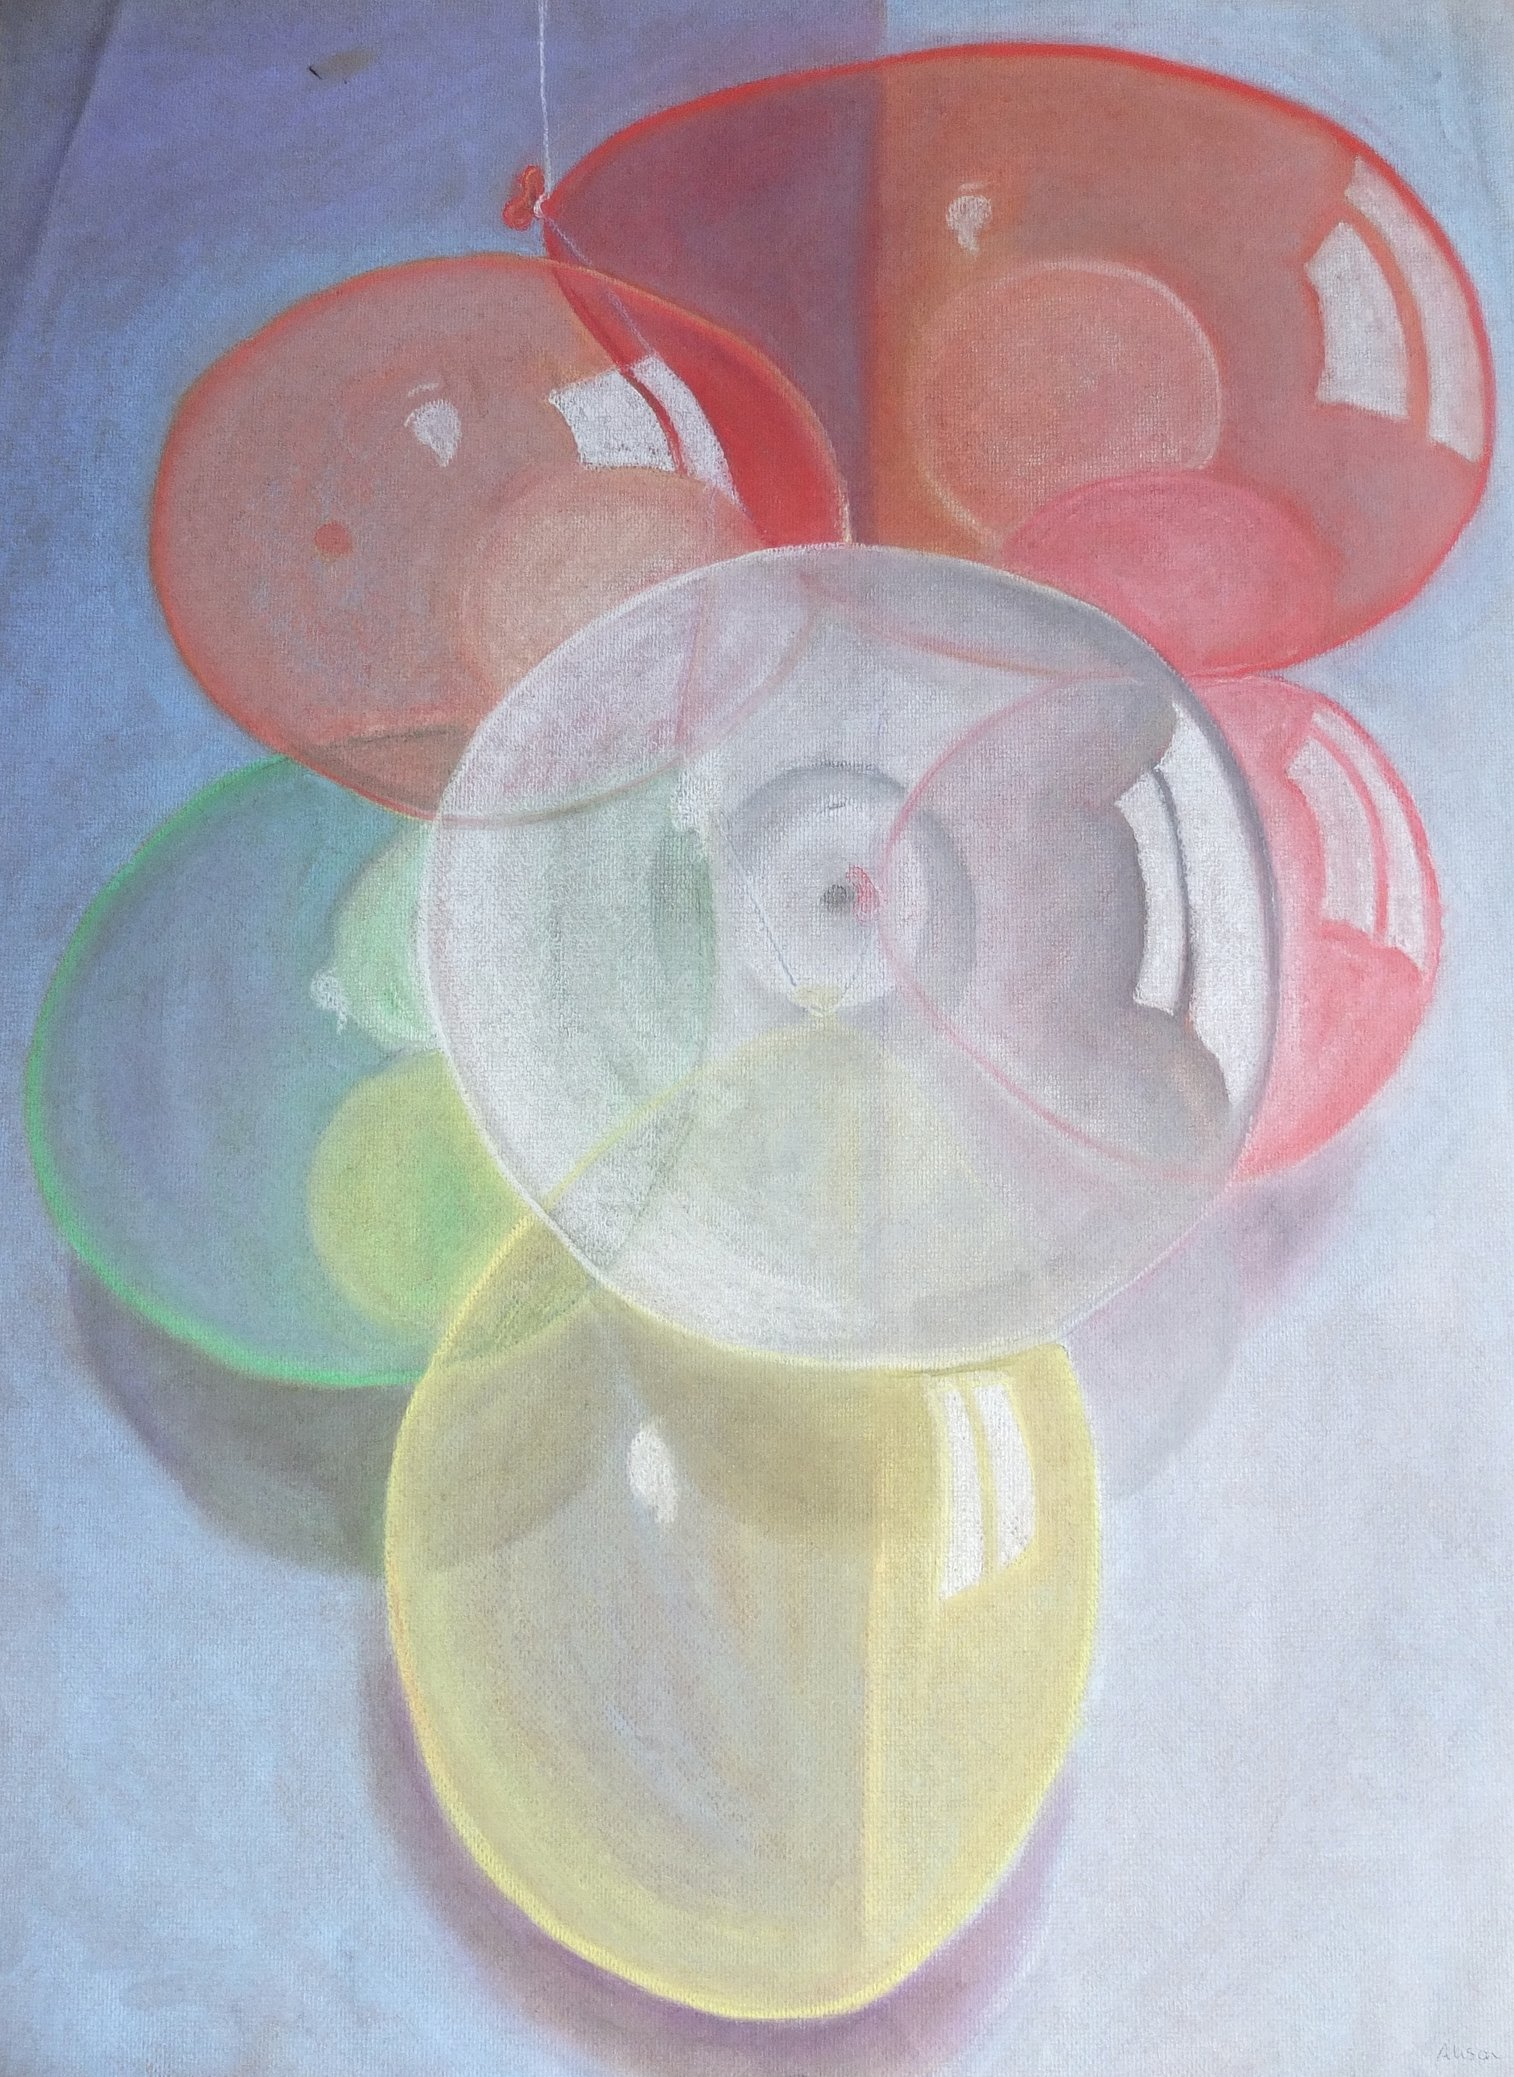 Balloons by Alison Gracie